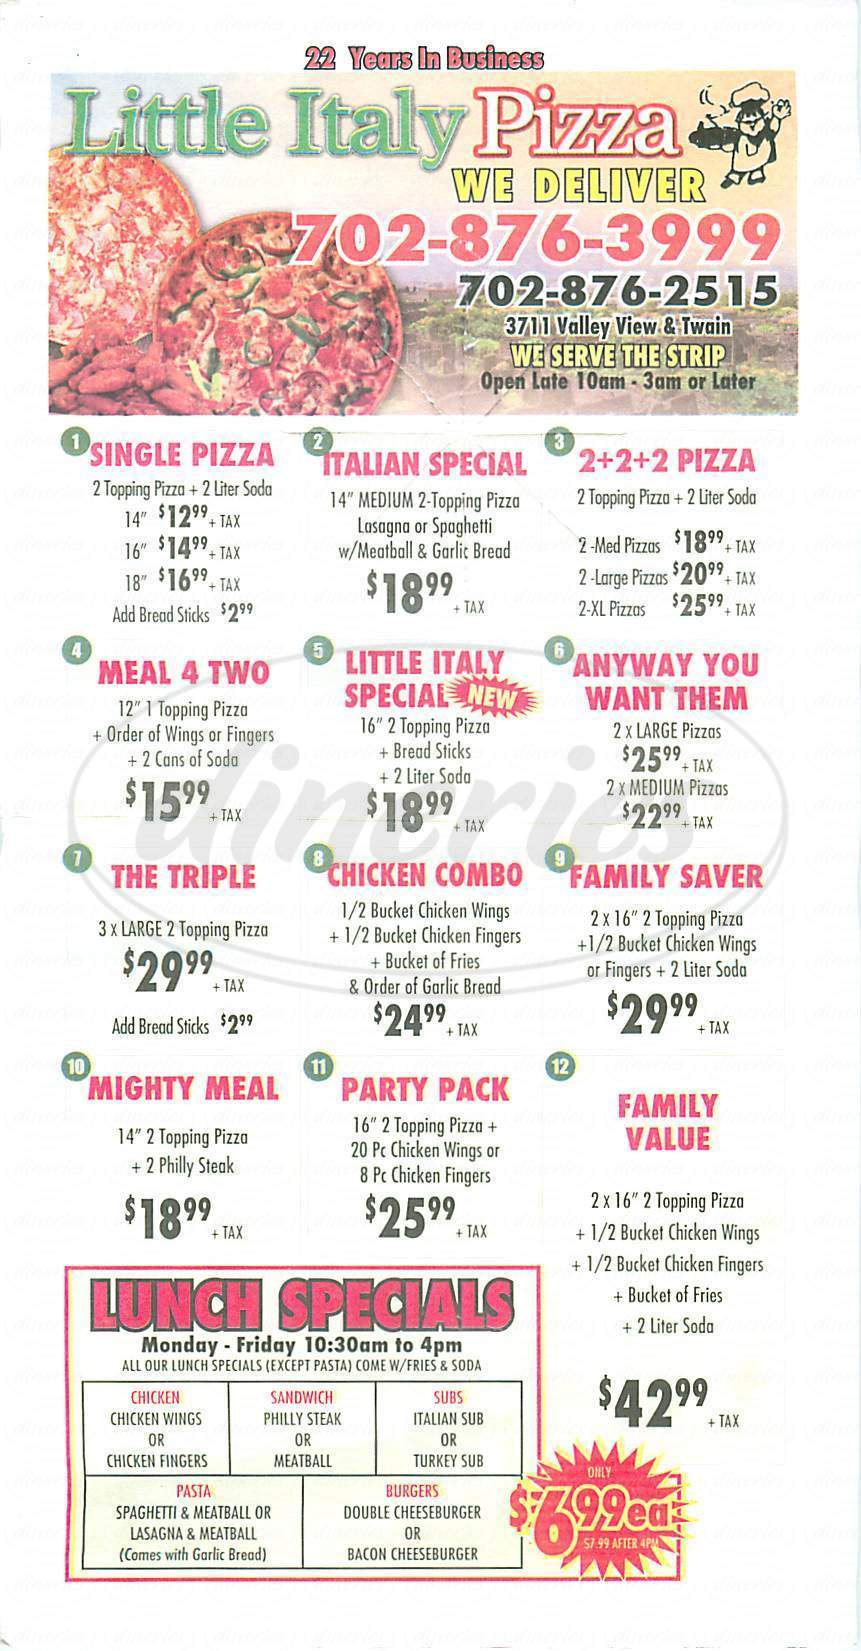 menu for Little Italy Pizza